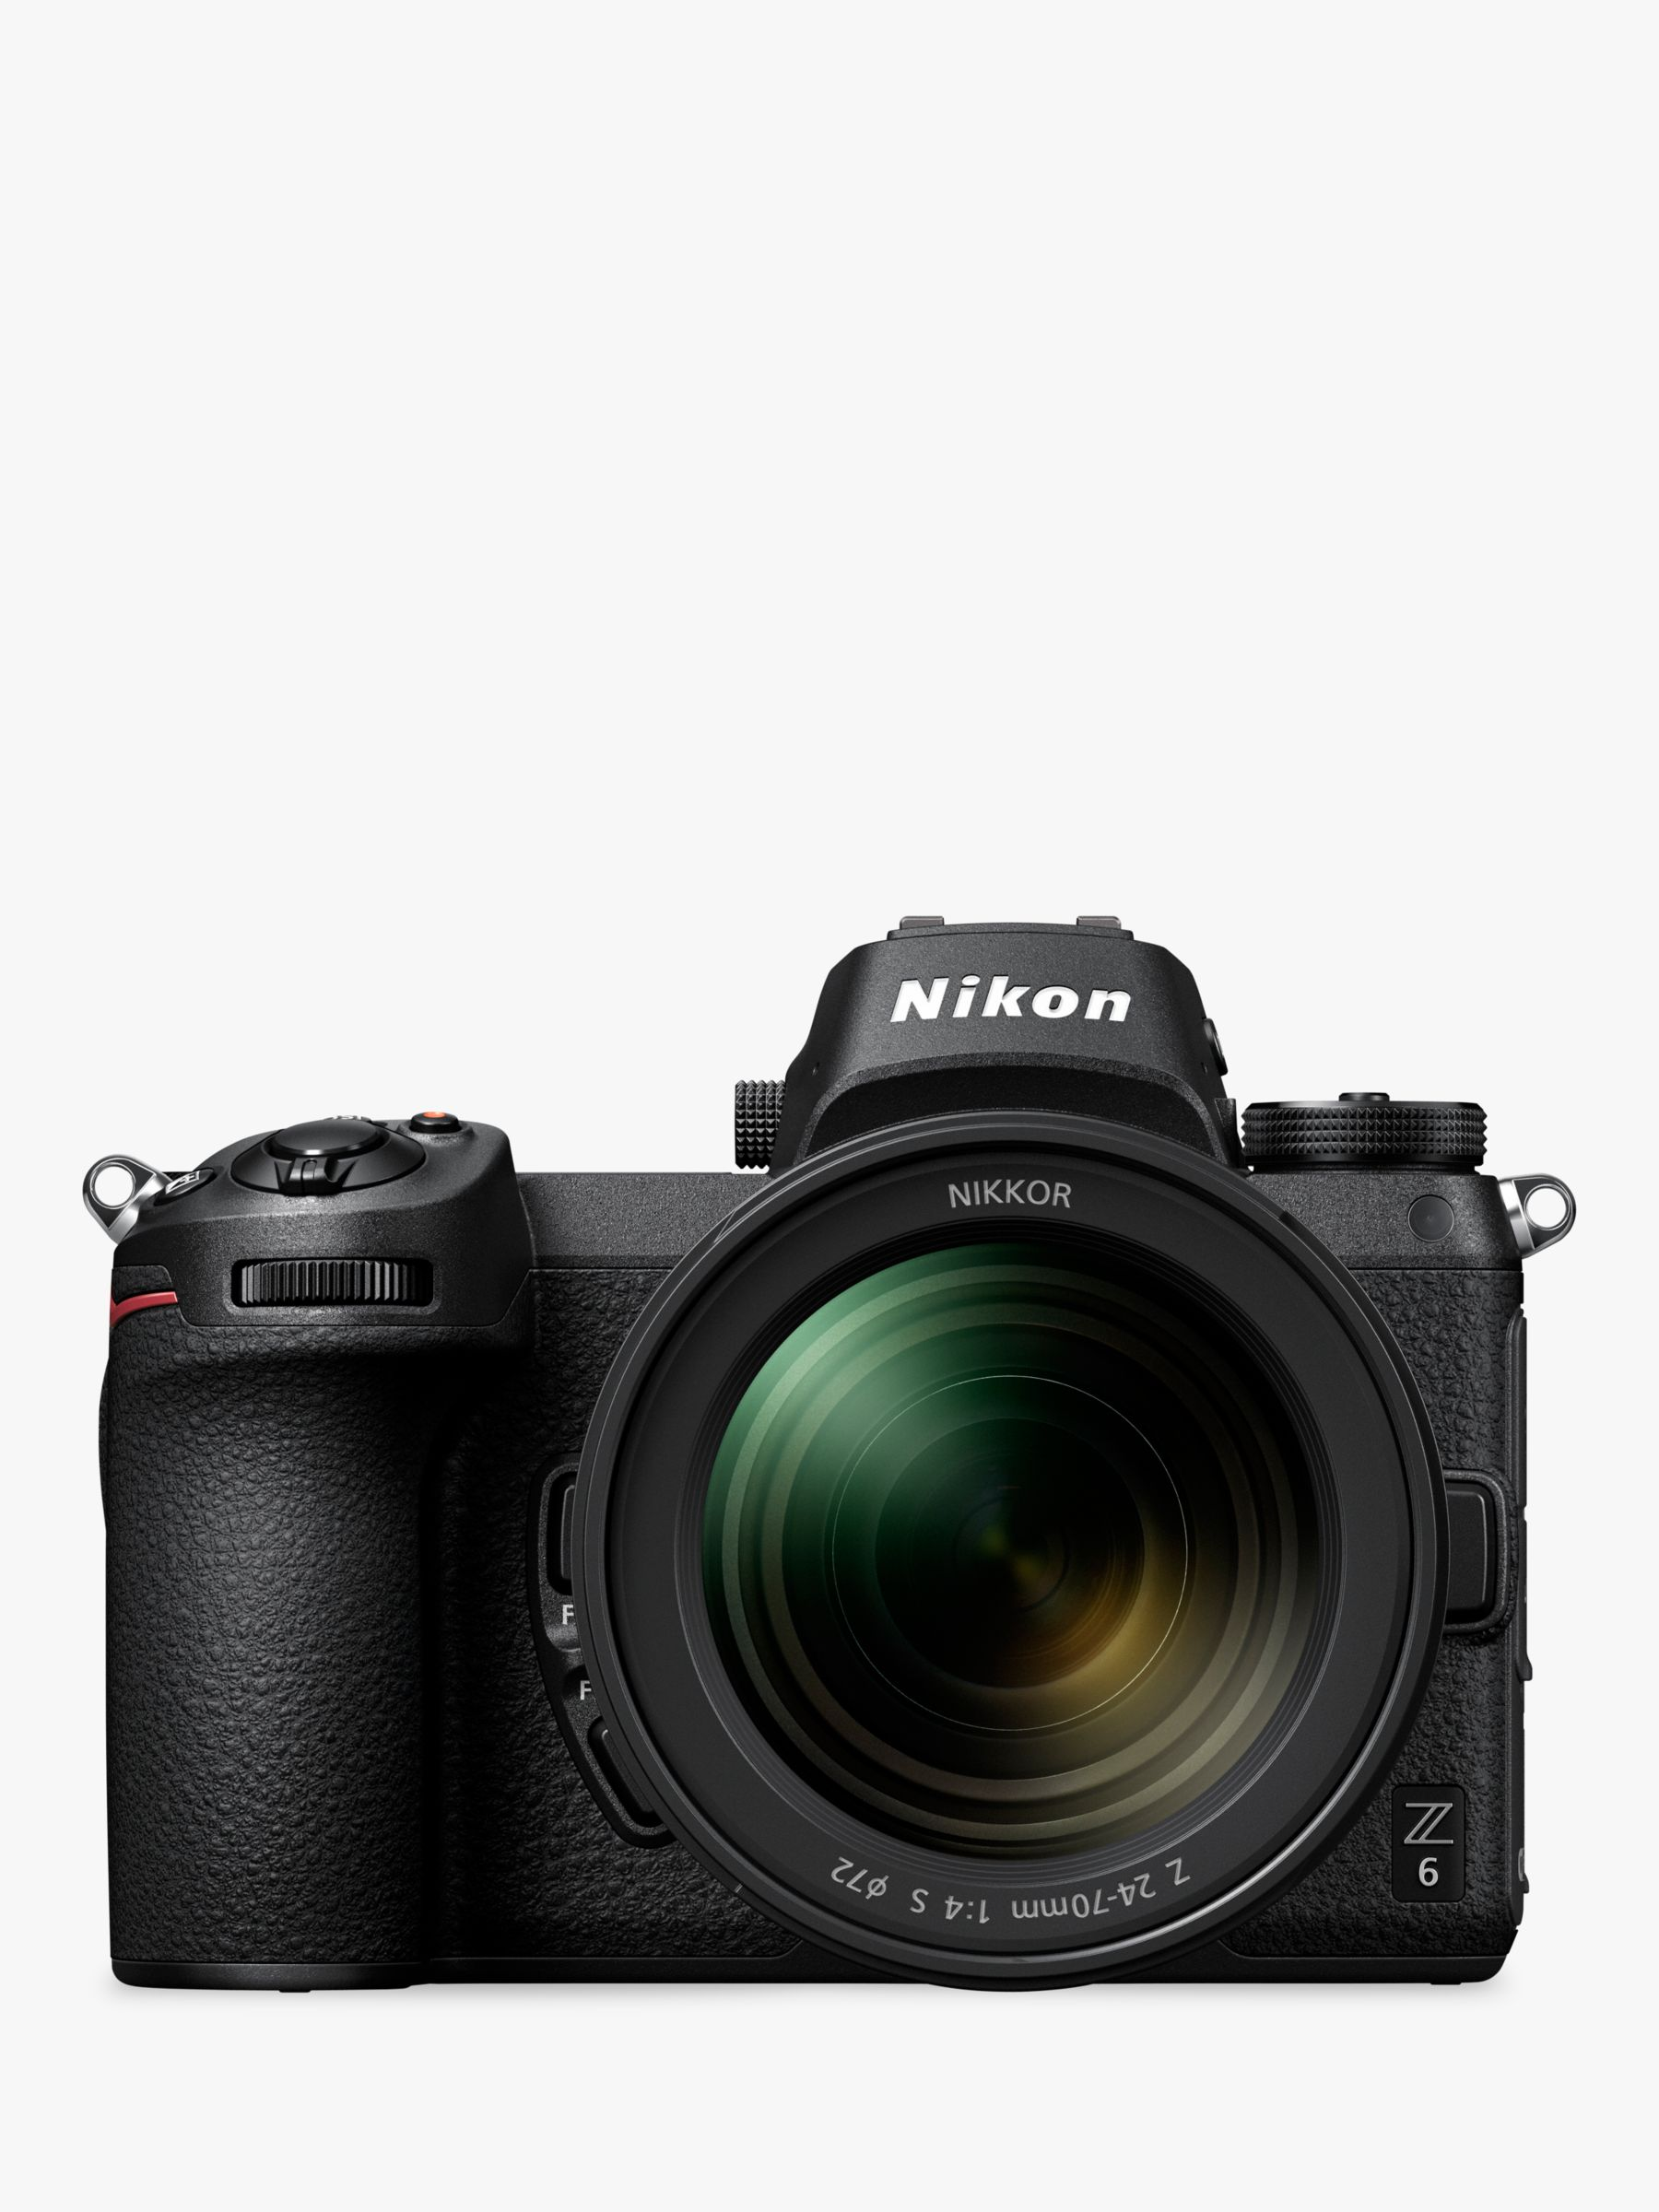 Nikon Nikon Z6 Compact System Camera with 24-70mm Lens, 4K UHD, 24.5MP, Wi-Fi, Bluetooth, OLED EVF, 3.2 Tiltable Touch Screen